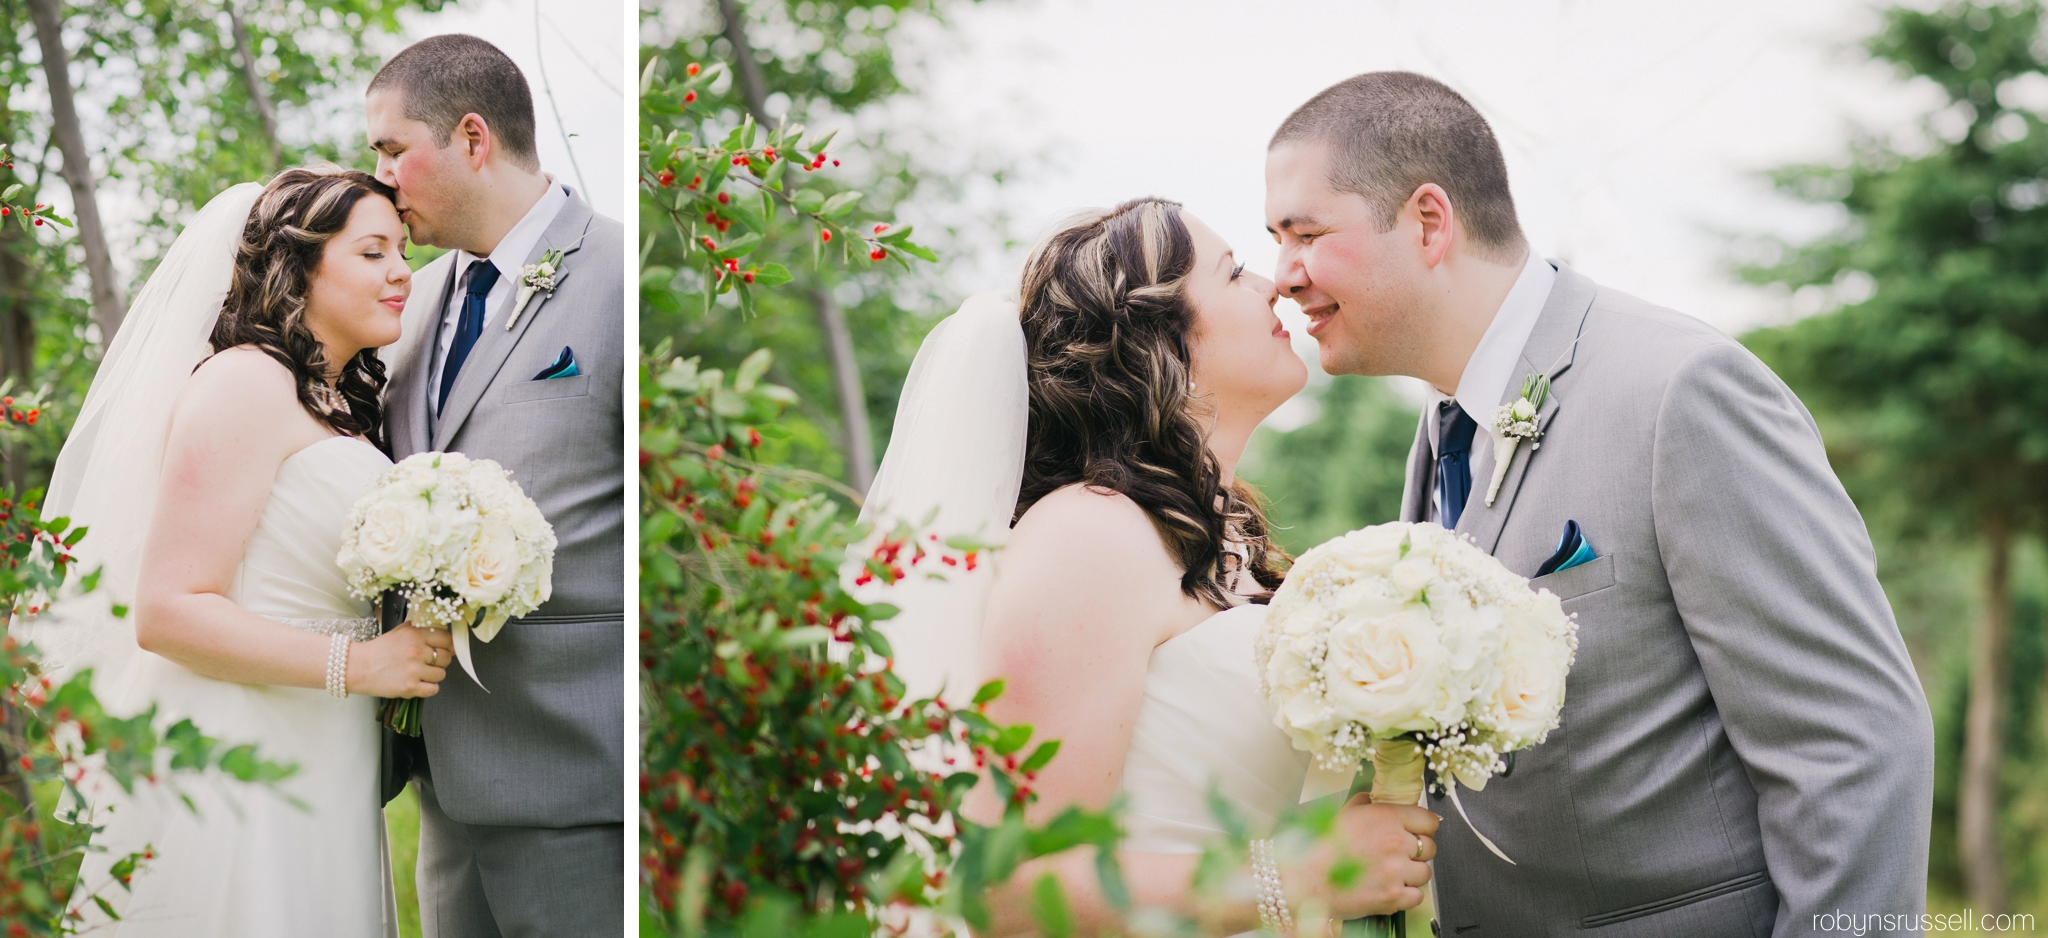 44-cute-nose-kisses-bride-and-groom.jpg